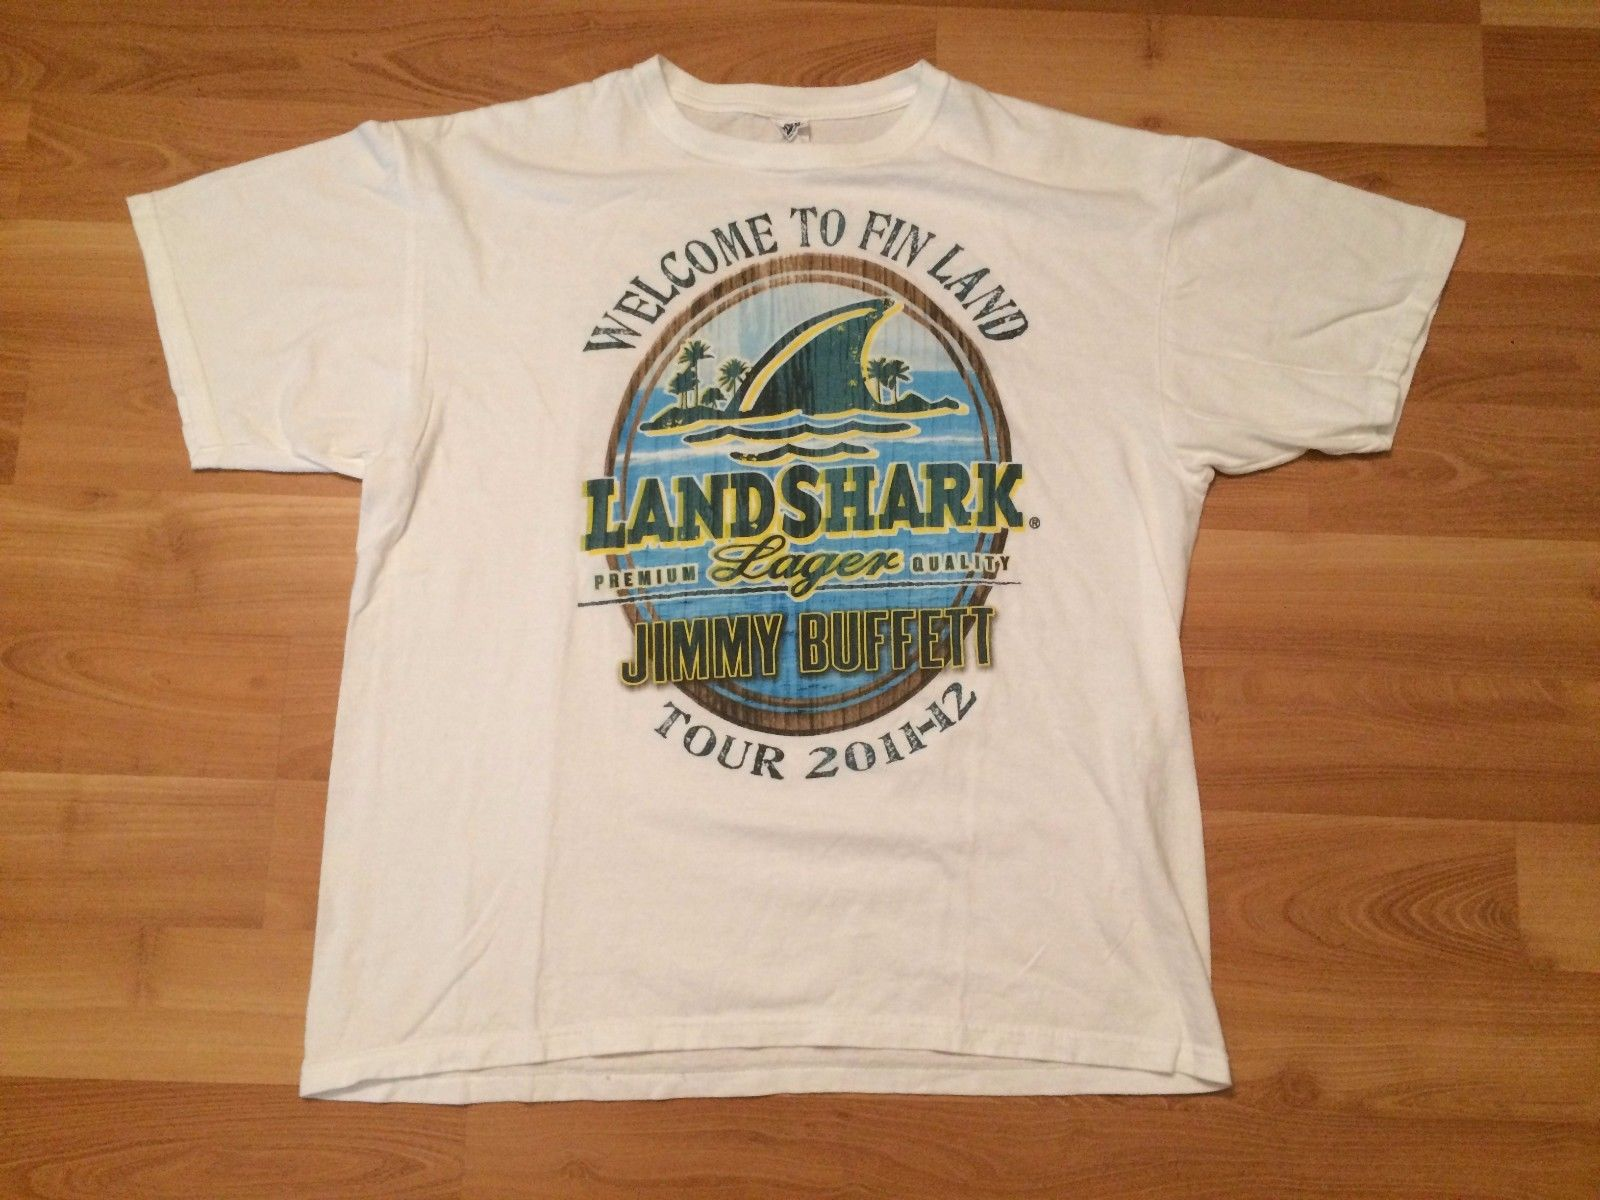 US $13 91 13% OFF|2011 JIMMY BUFFETT CONCERT T SHIRT MENS XL WELCOME TO  FINLAND LANDSHARK LAGER-in T-Shirts from Men's Clothing on Aliexpress com |